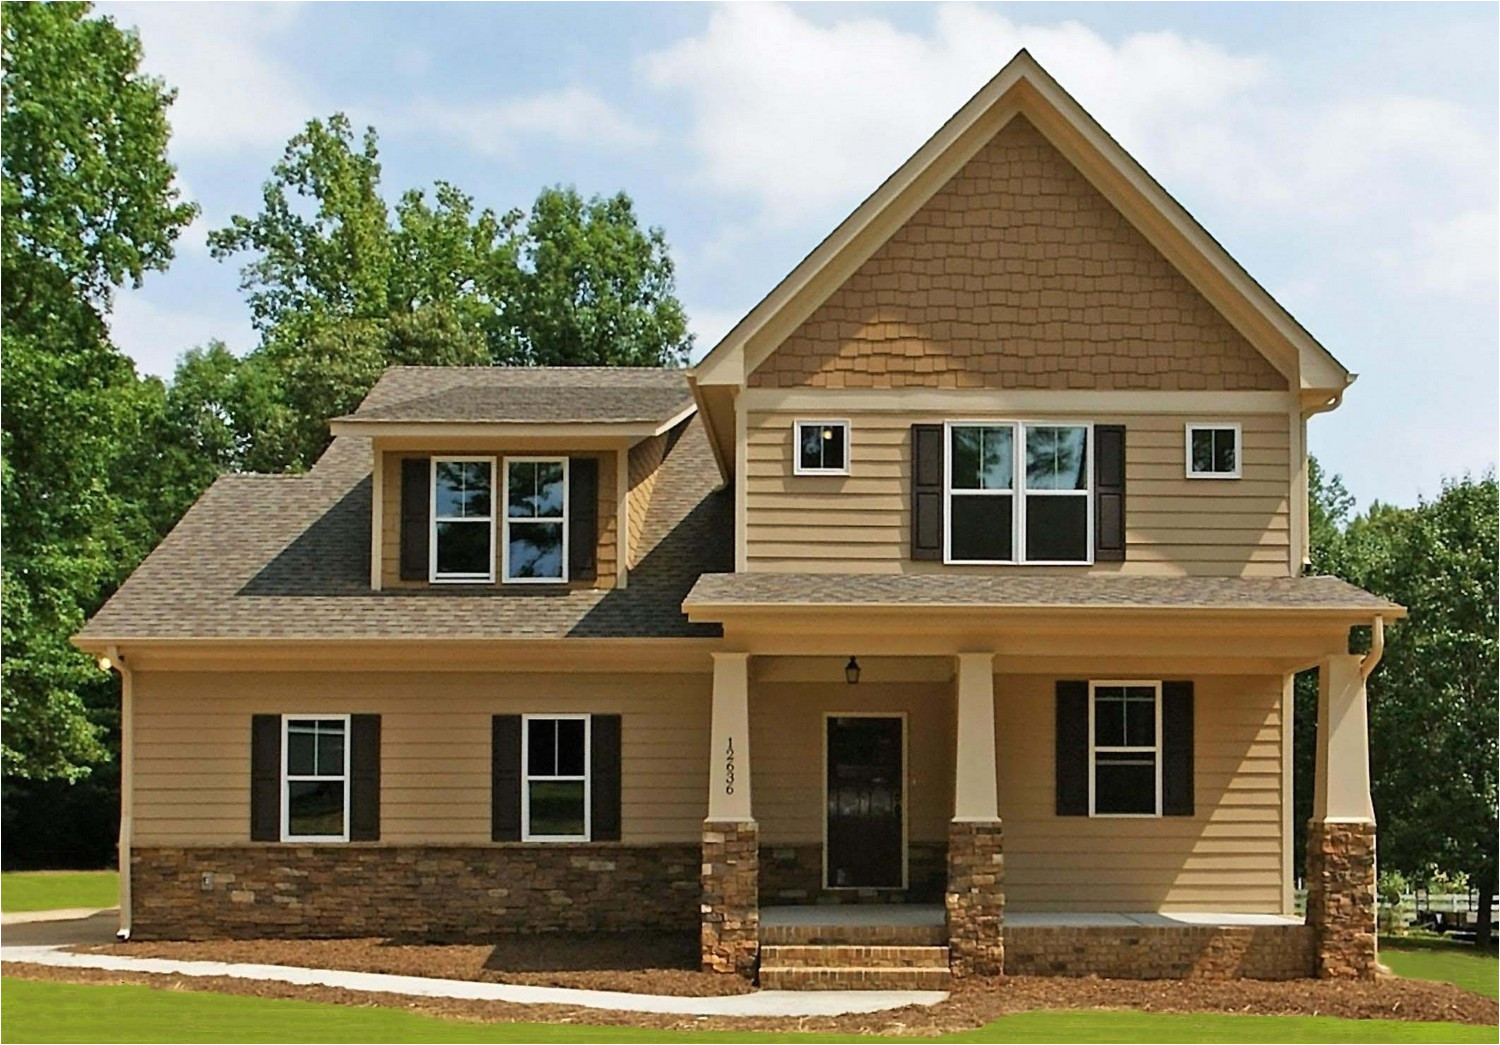 14558 craftsman home plans with front porch